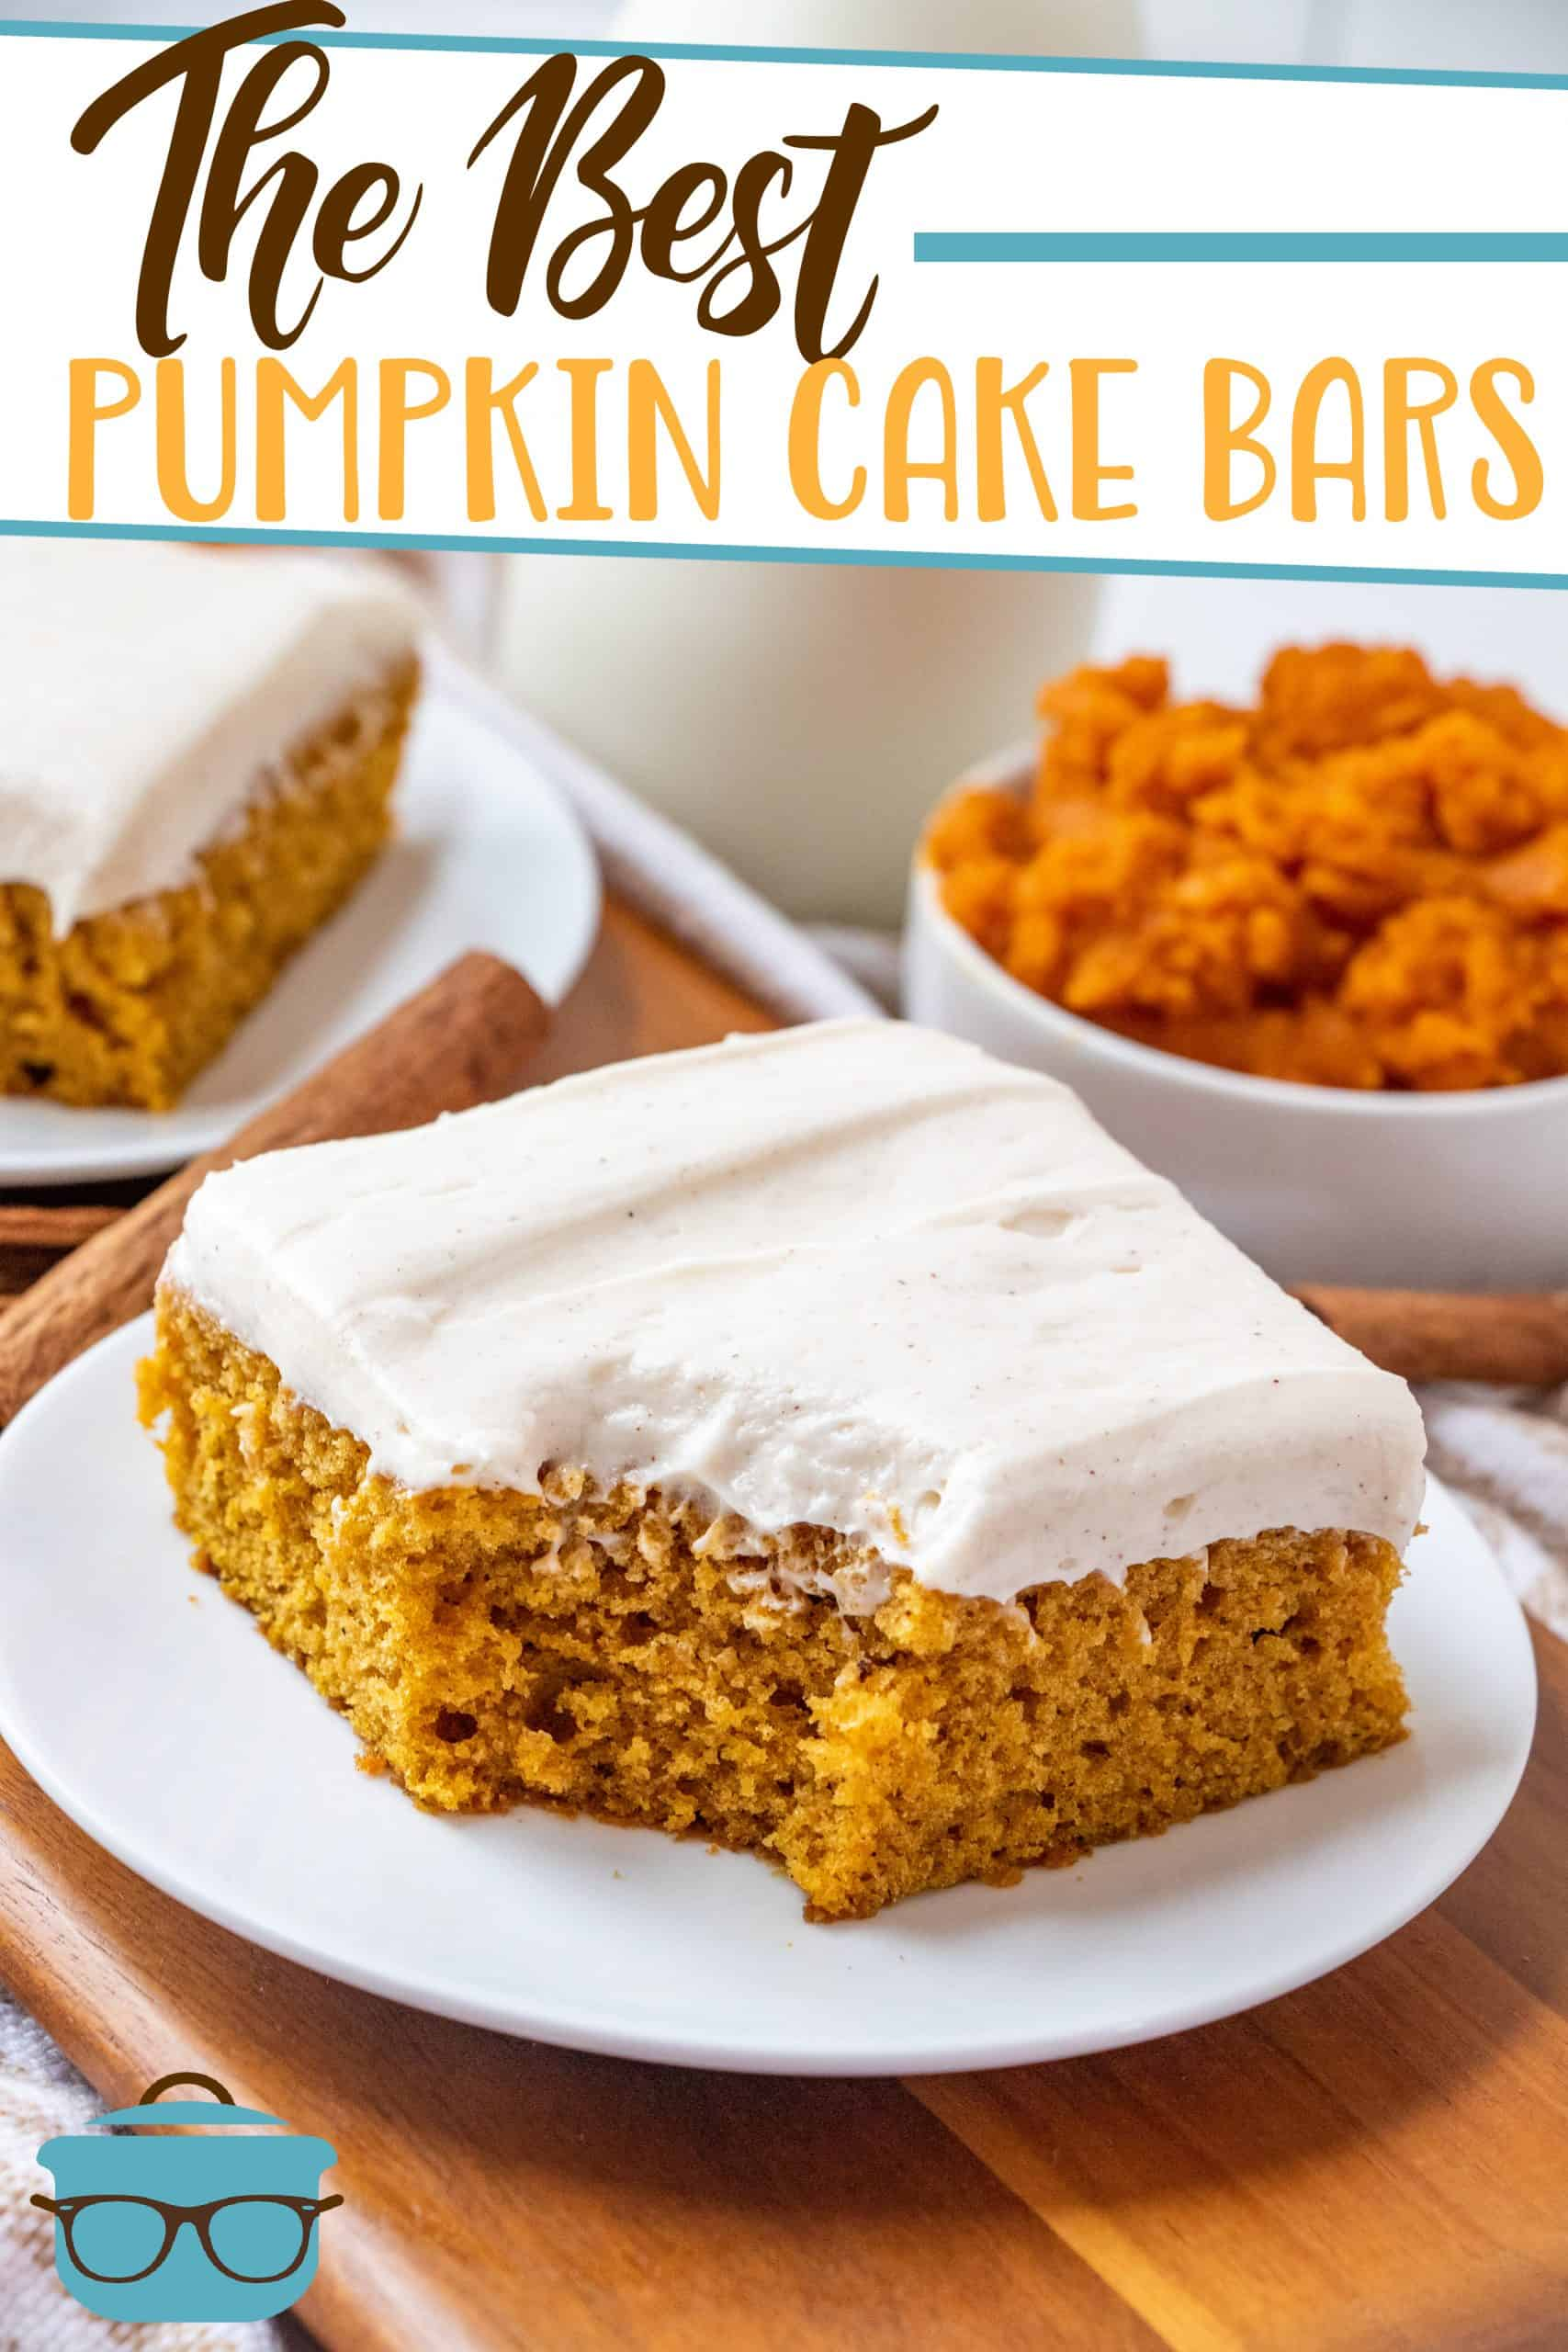 The Best Pumpkin Cake Bars recipe is a homemade pumpkin pie spice cake topped with a homemade pumpkin pie spice cream cheese frosting.